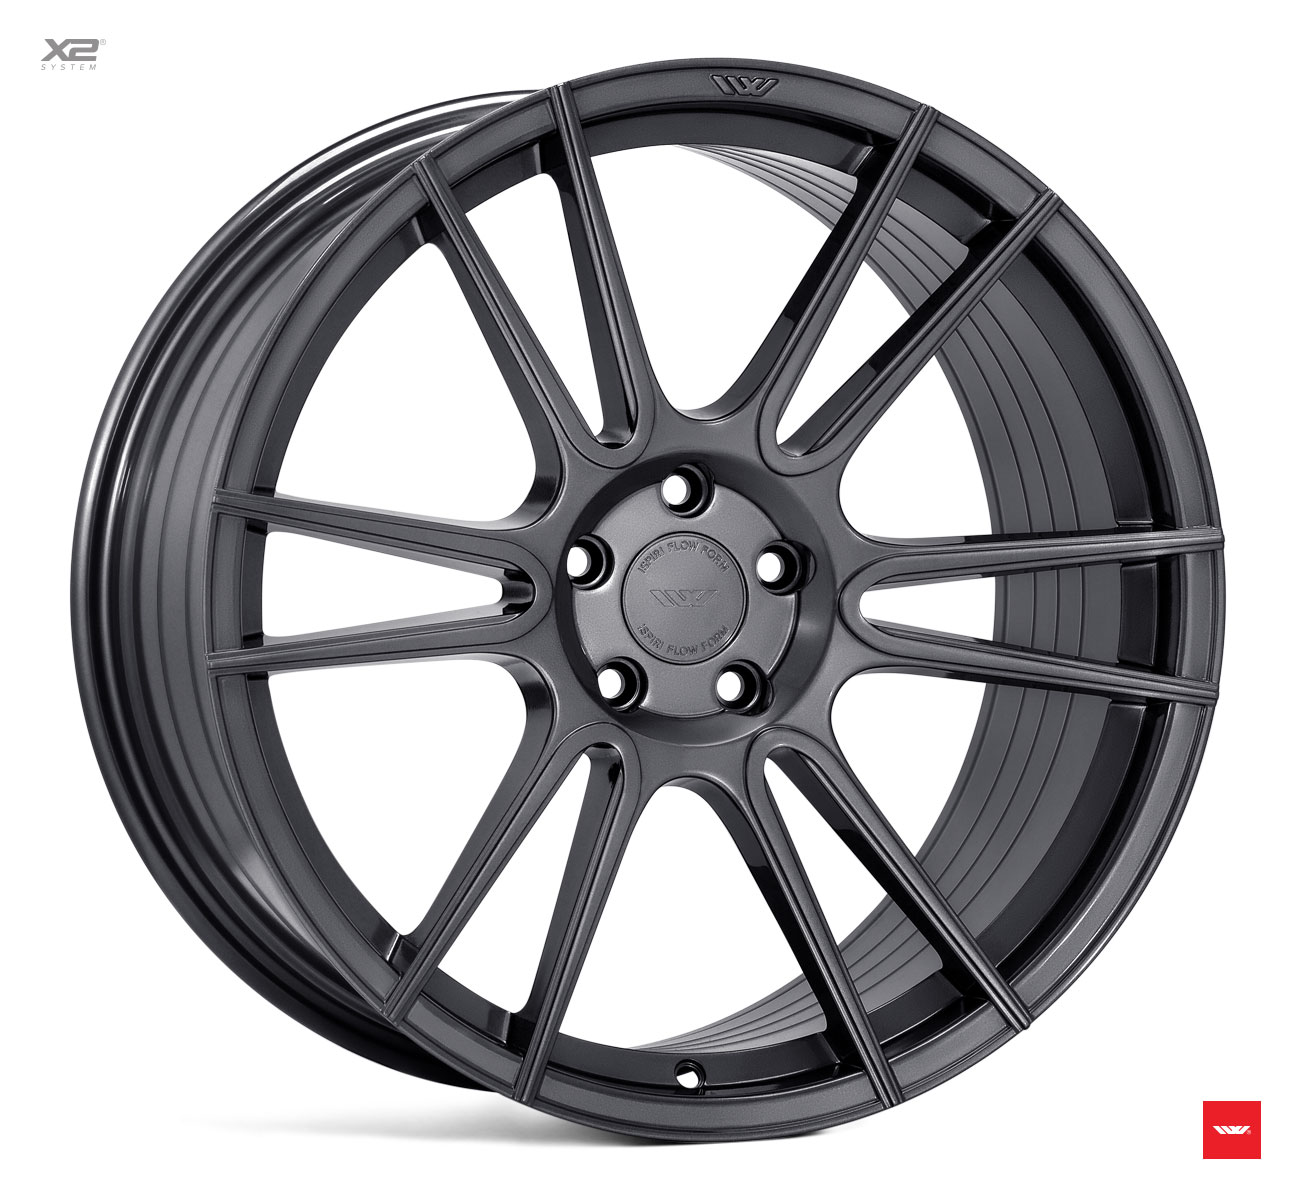 "NEW 20"" ISPIRI FFR7 TWIN CURVED 6 SPOKE ALLOY WHEELS IN CARBON GRAPHITE, WIDER 10"" REAR"